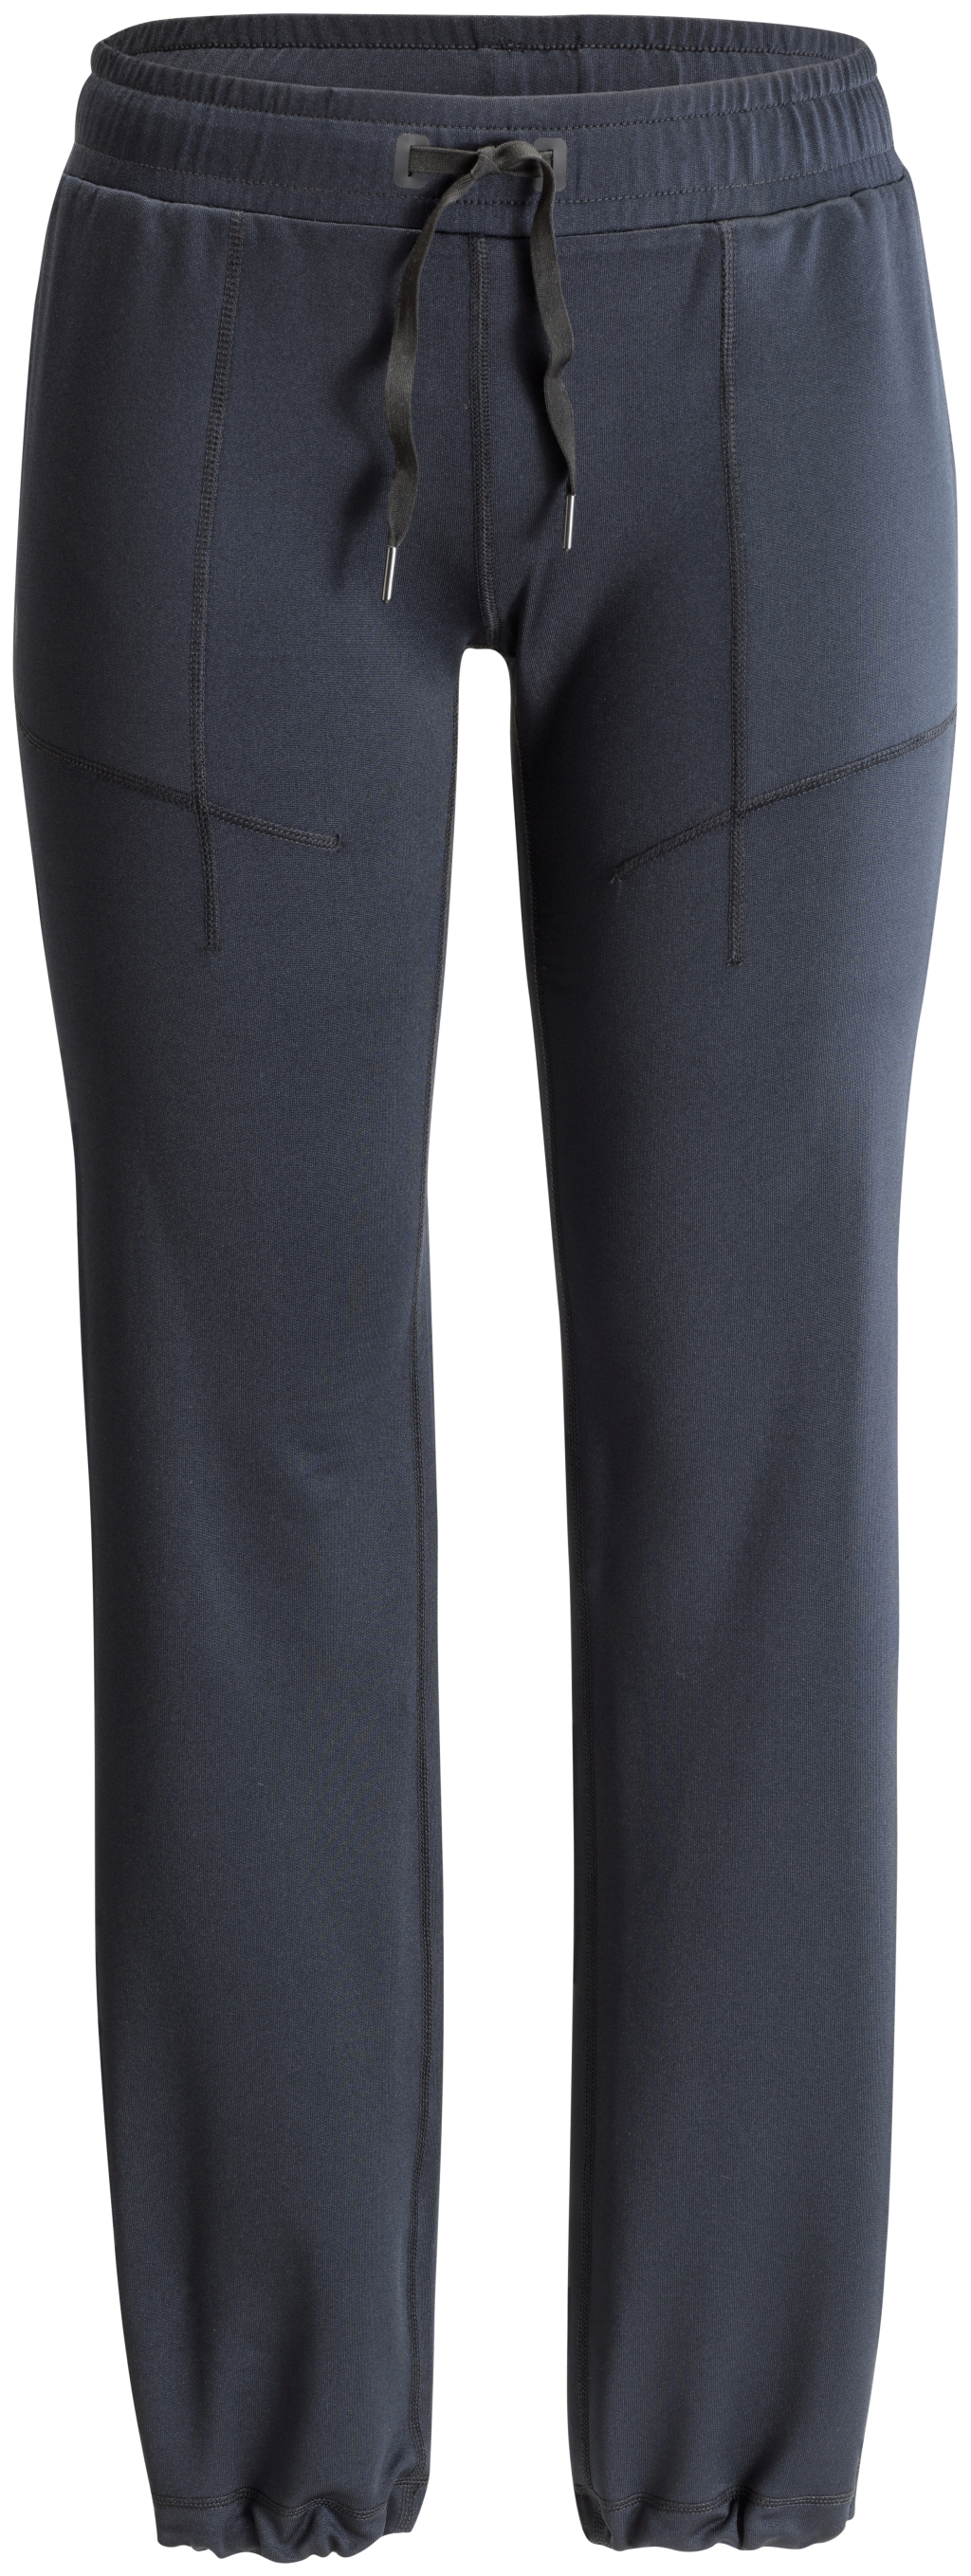 Black Diamond Paragon Pants Women's Black-30